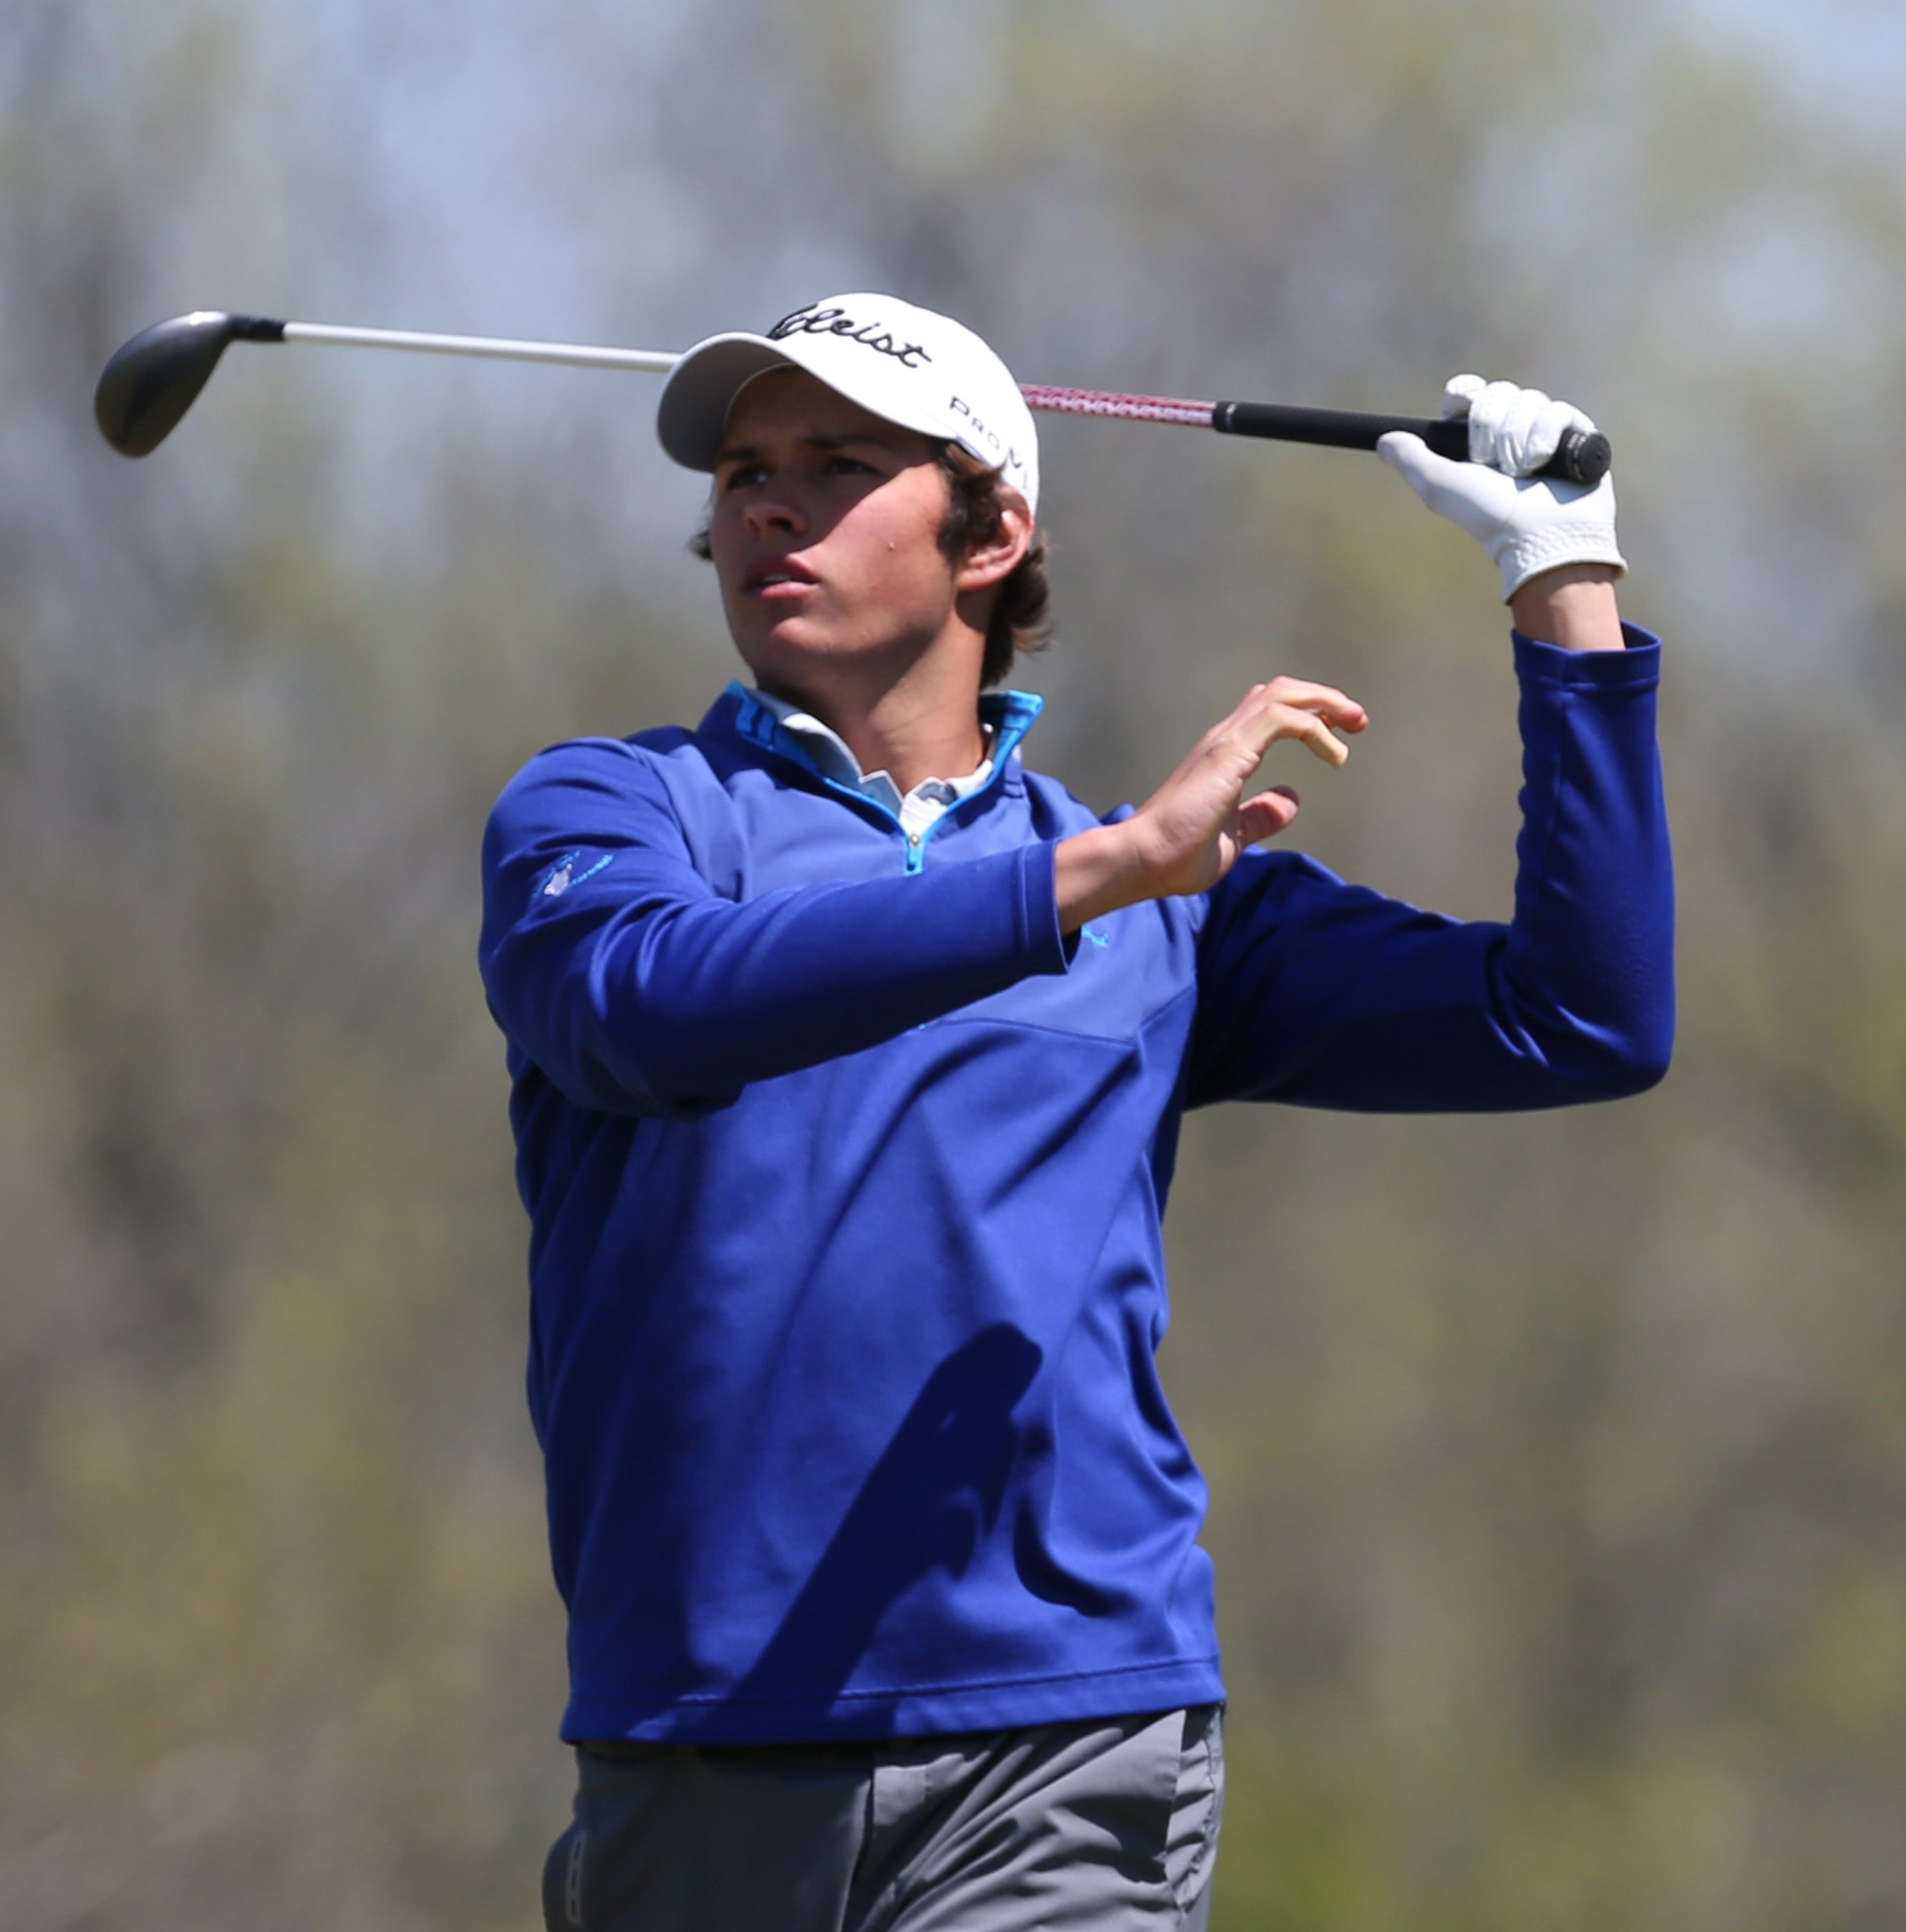 Ben Reichert watches his tee shot on No. 11 during the 2016 Section VI golf championships. (James P. McCoy/Buffalo News)